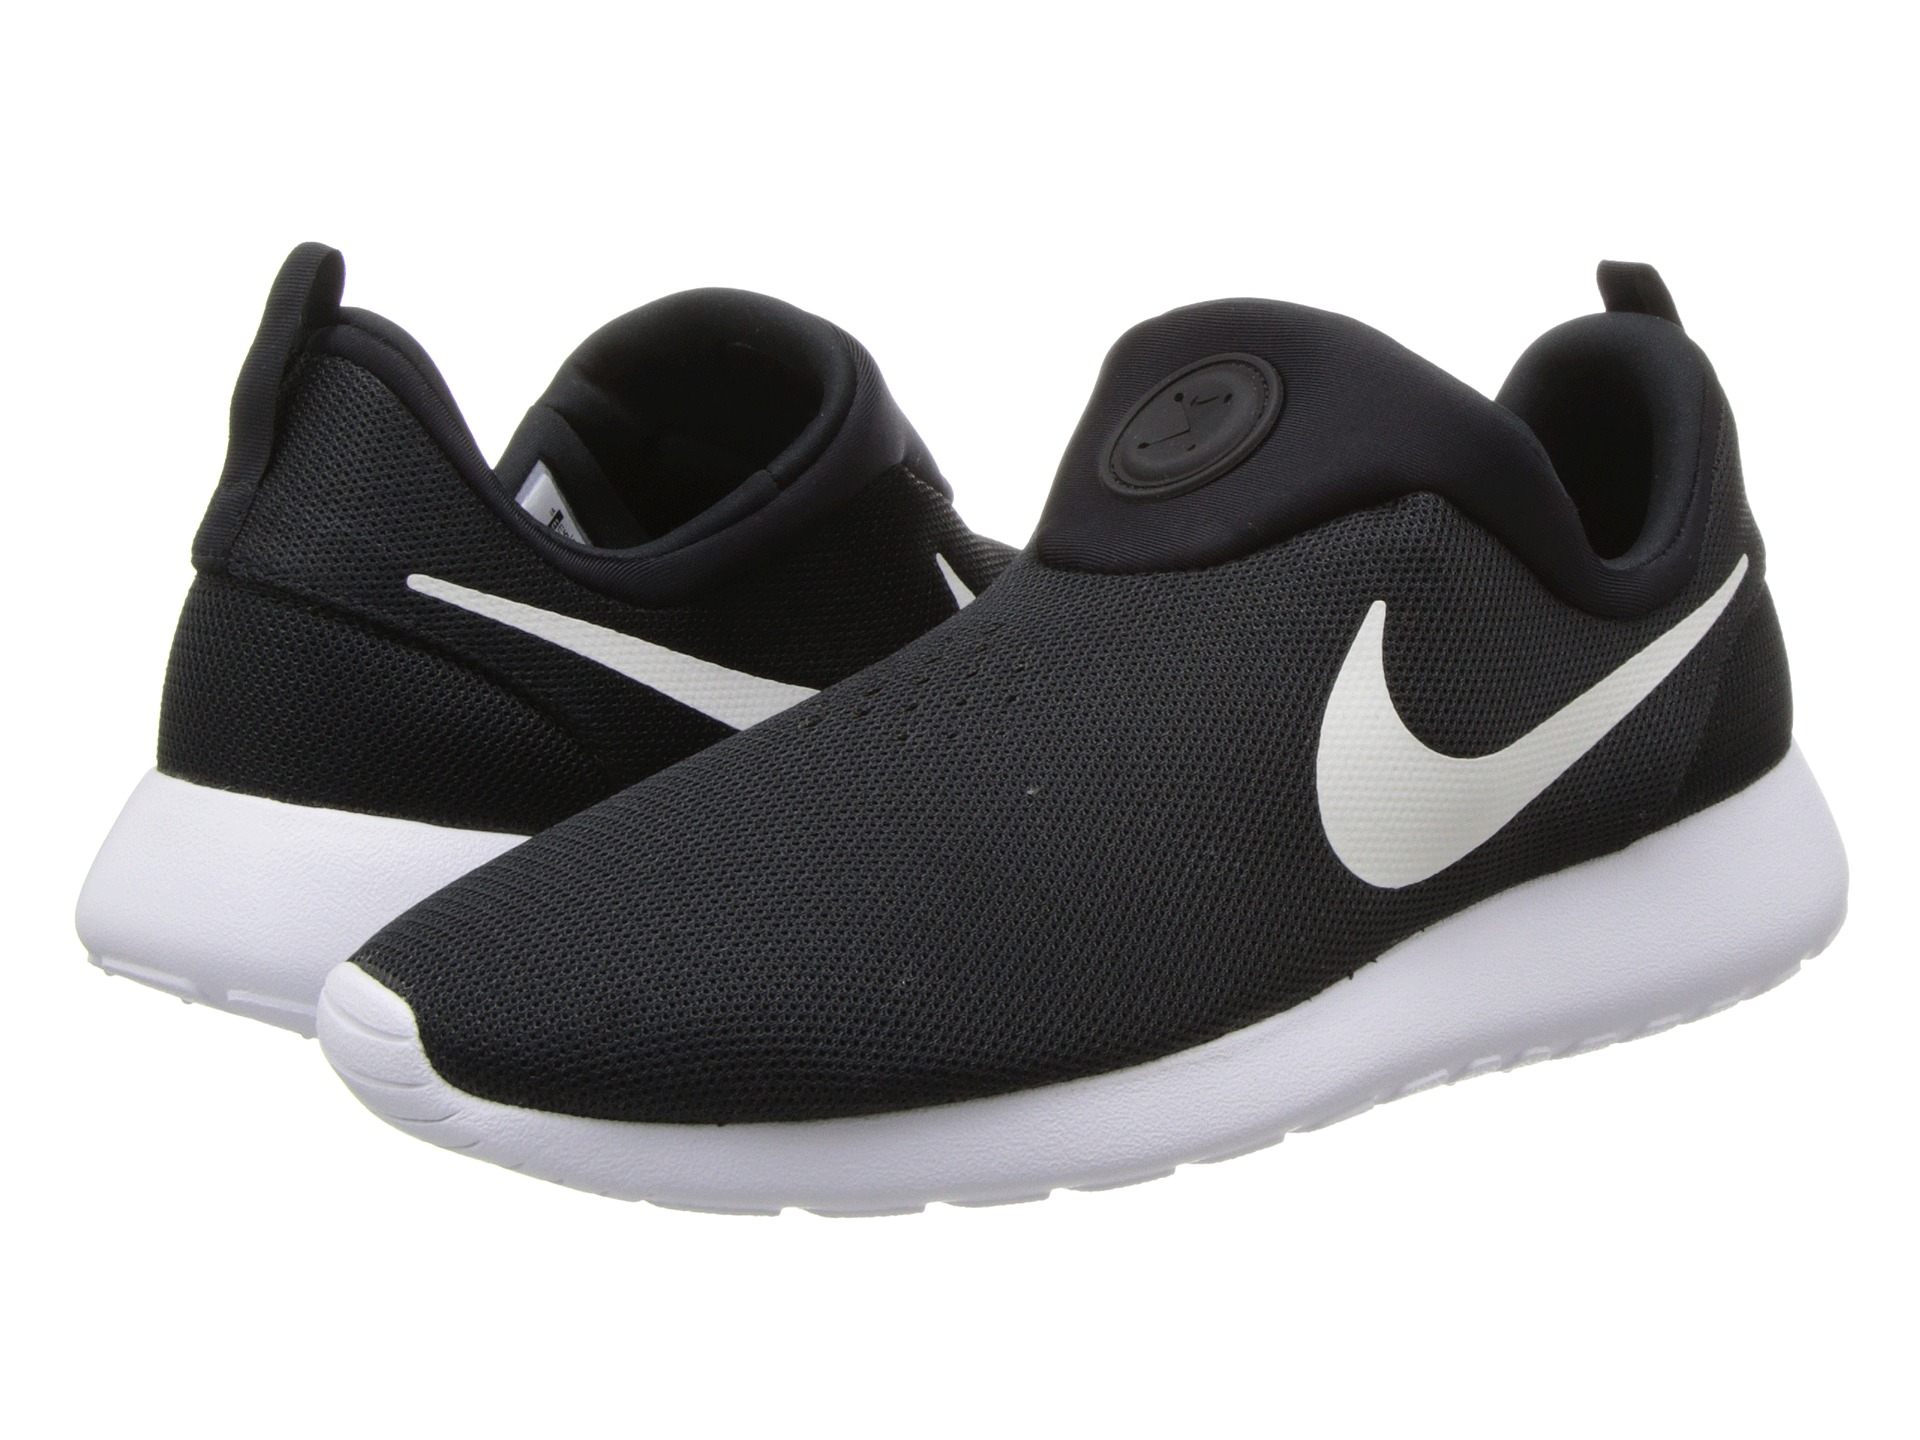 Nike Slip On Shoes Men Likewise 262192714715 Further